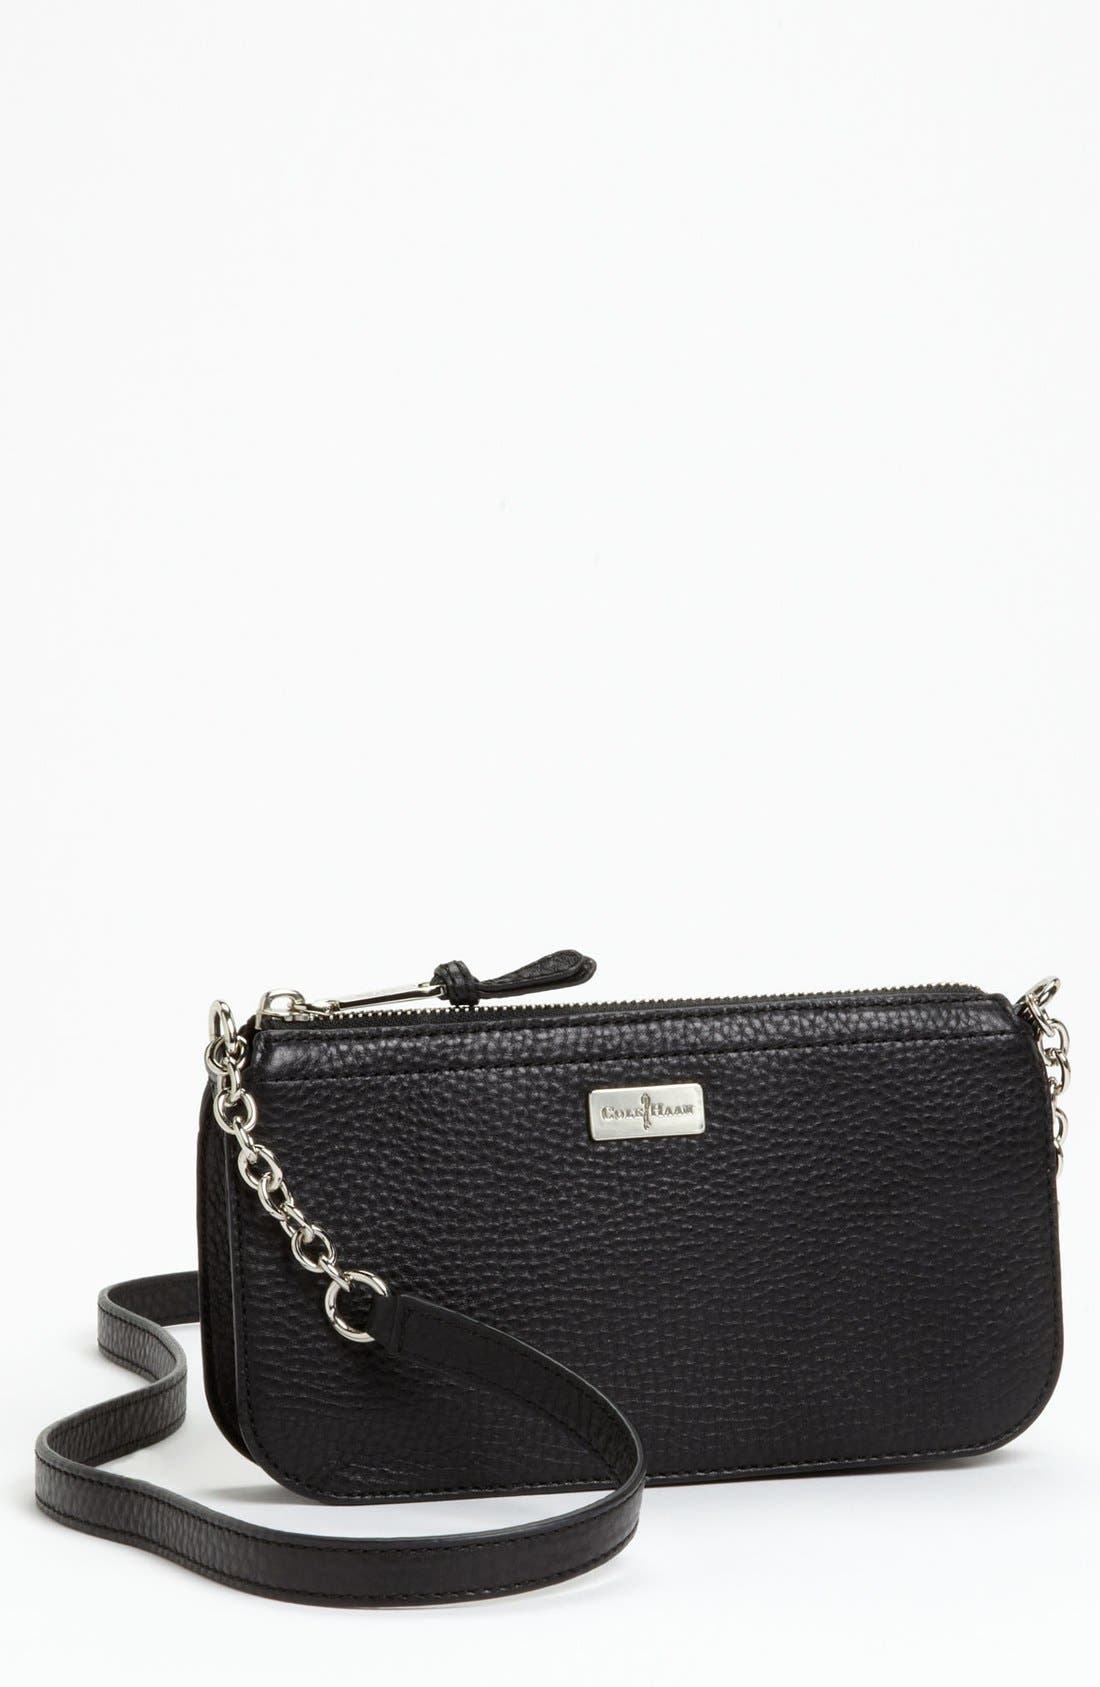 Main Image - Cole Haan 'Village' Zip Top Crossbody Bag